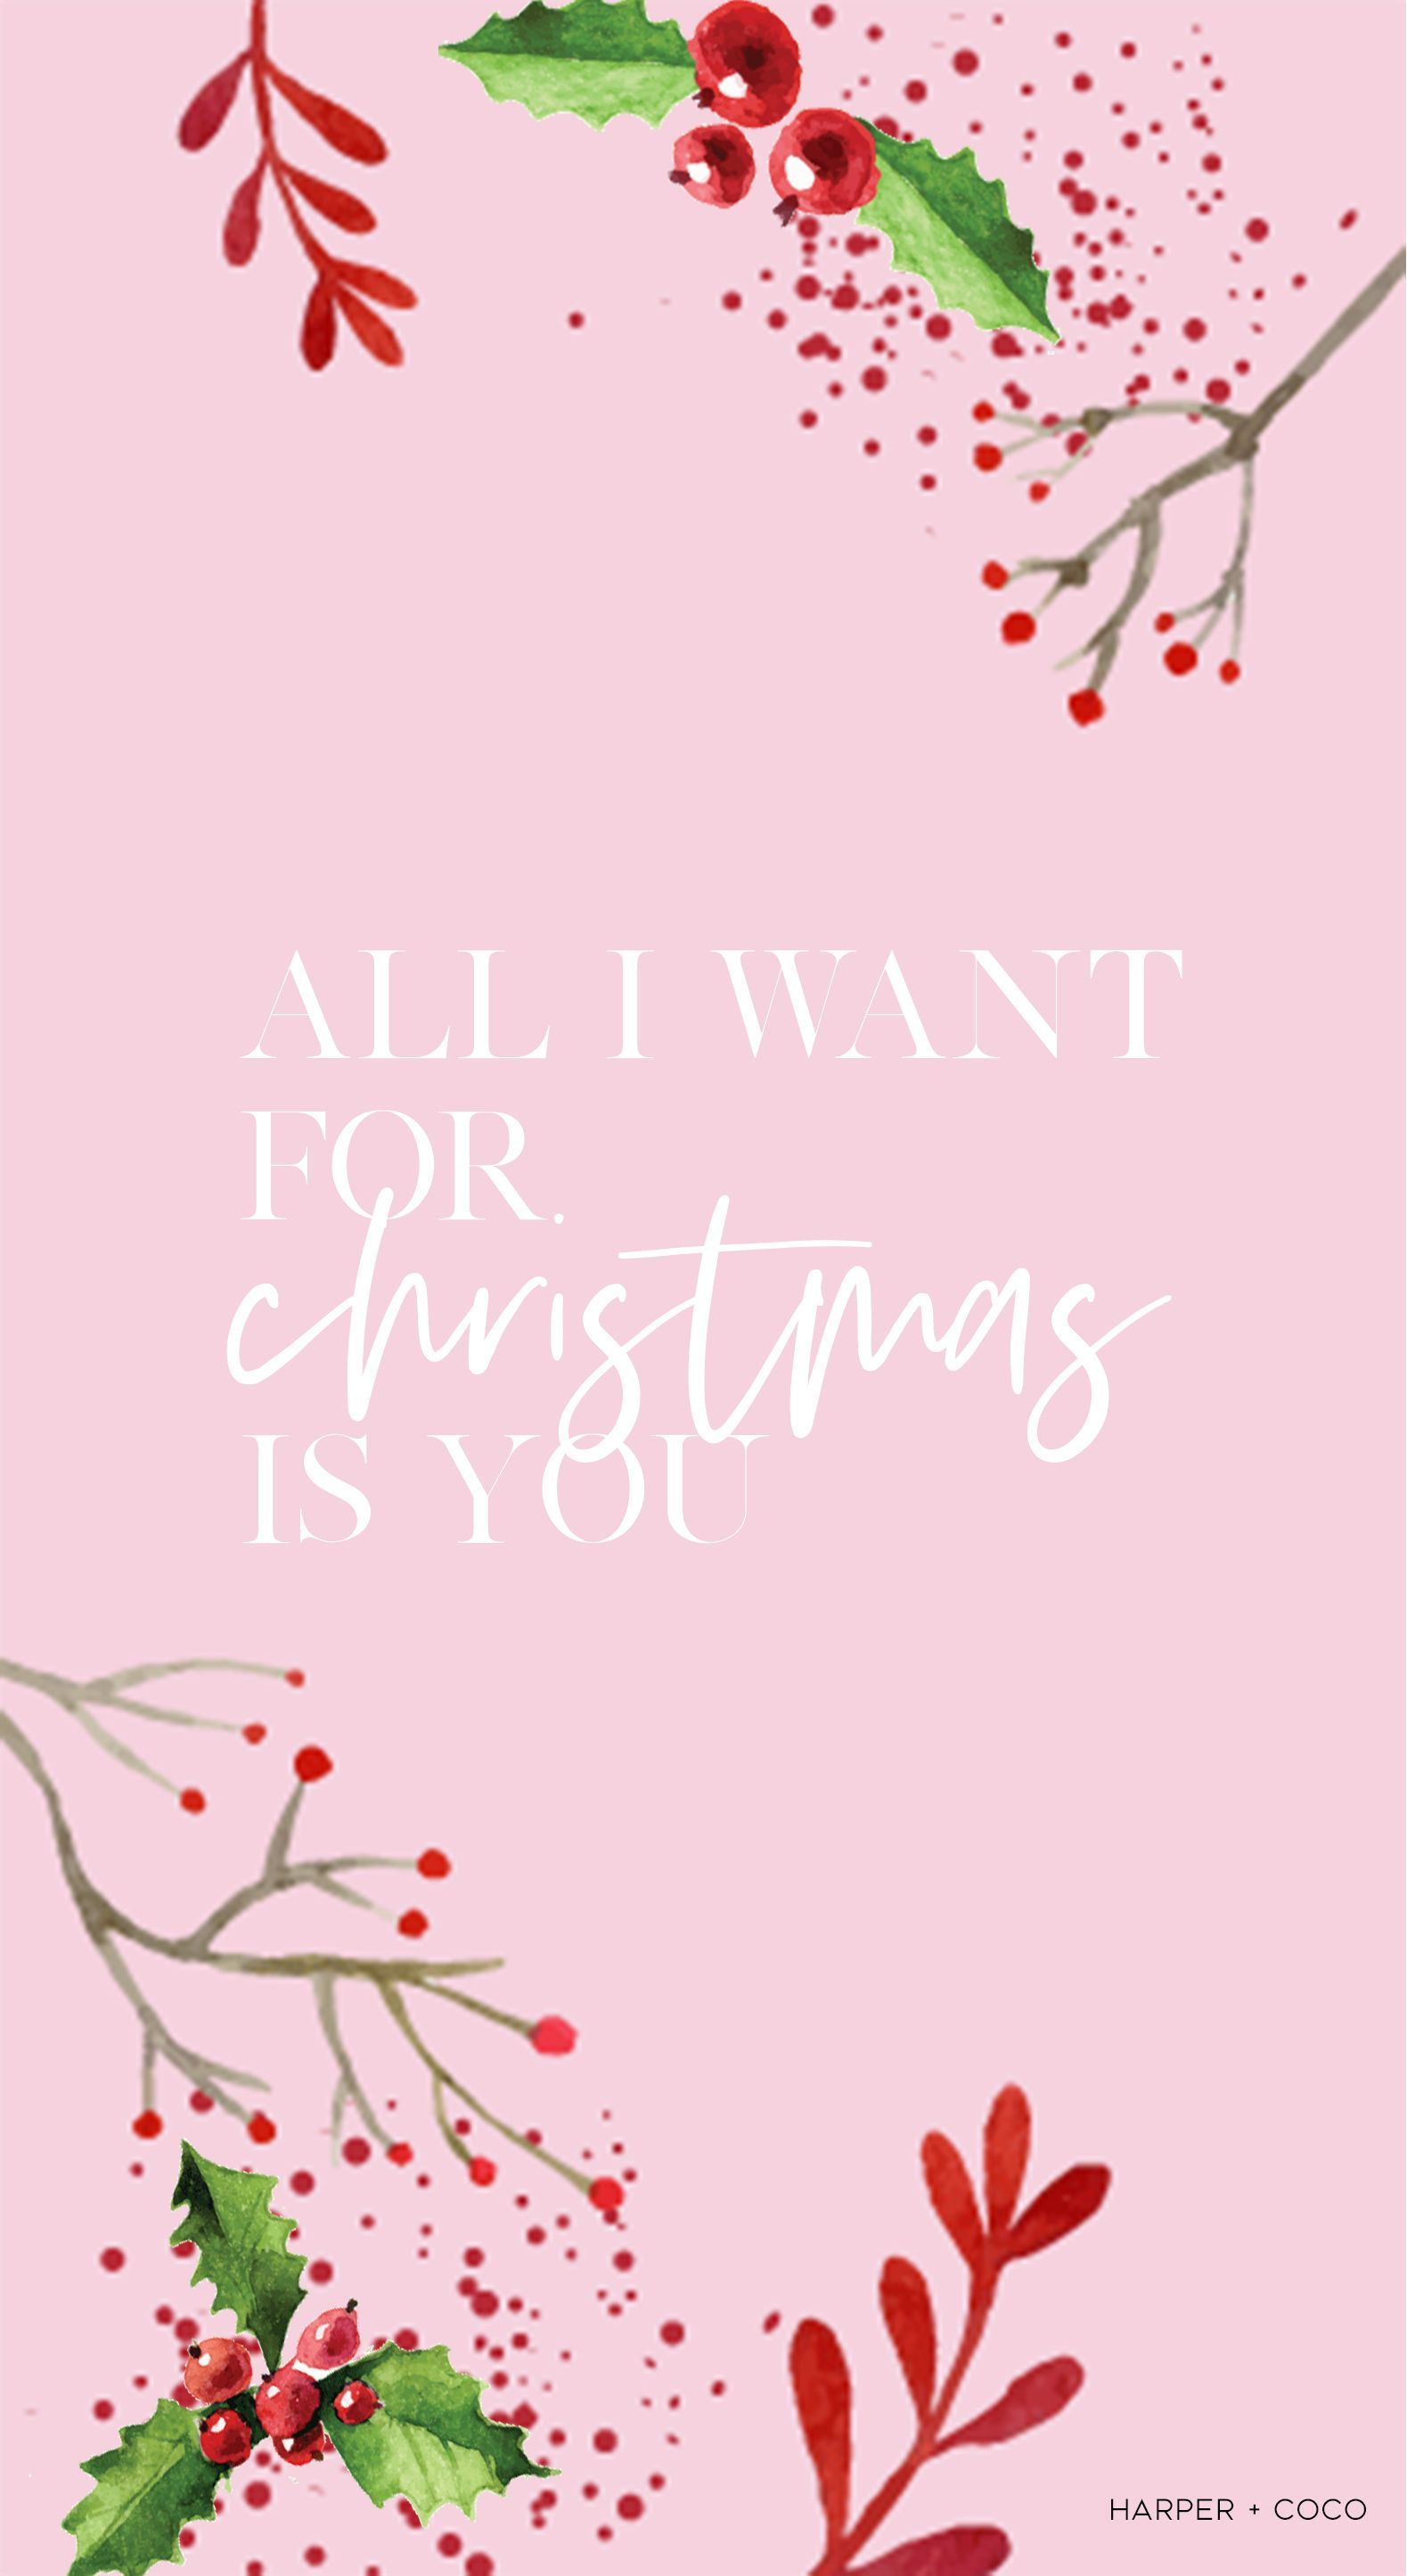 All I Want For Christmas Is You Iphone Wallpaper Pink Christmas Freewallpaper Iphonewall Wallpaper Iphone Christmas Christmas Phone Wallpaper Xmas Wallpaper